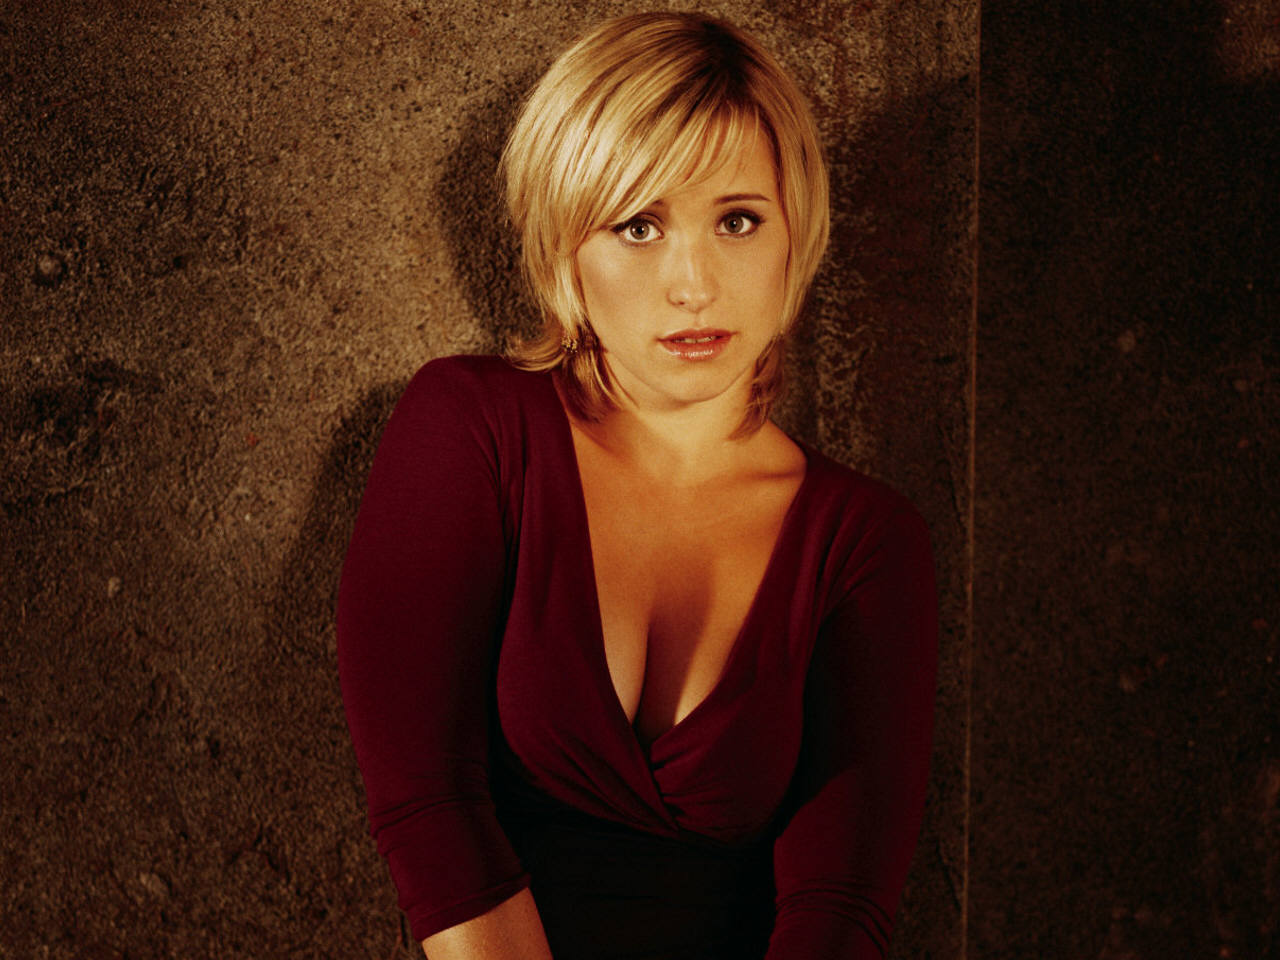 Celebrity Models Allison Mack Wallpapers 1280x960